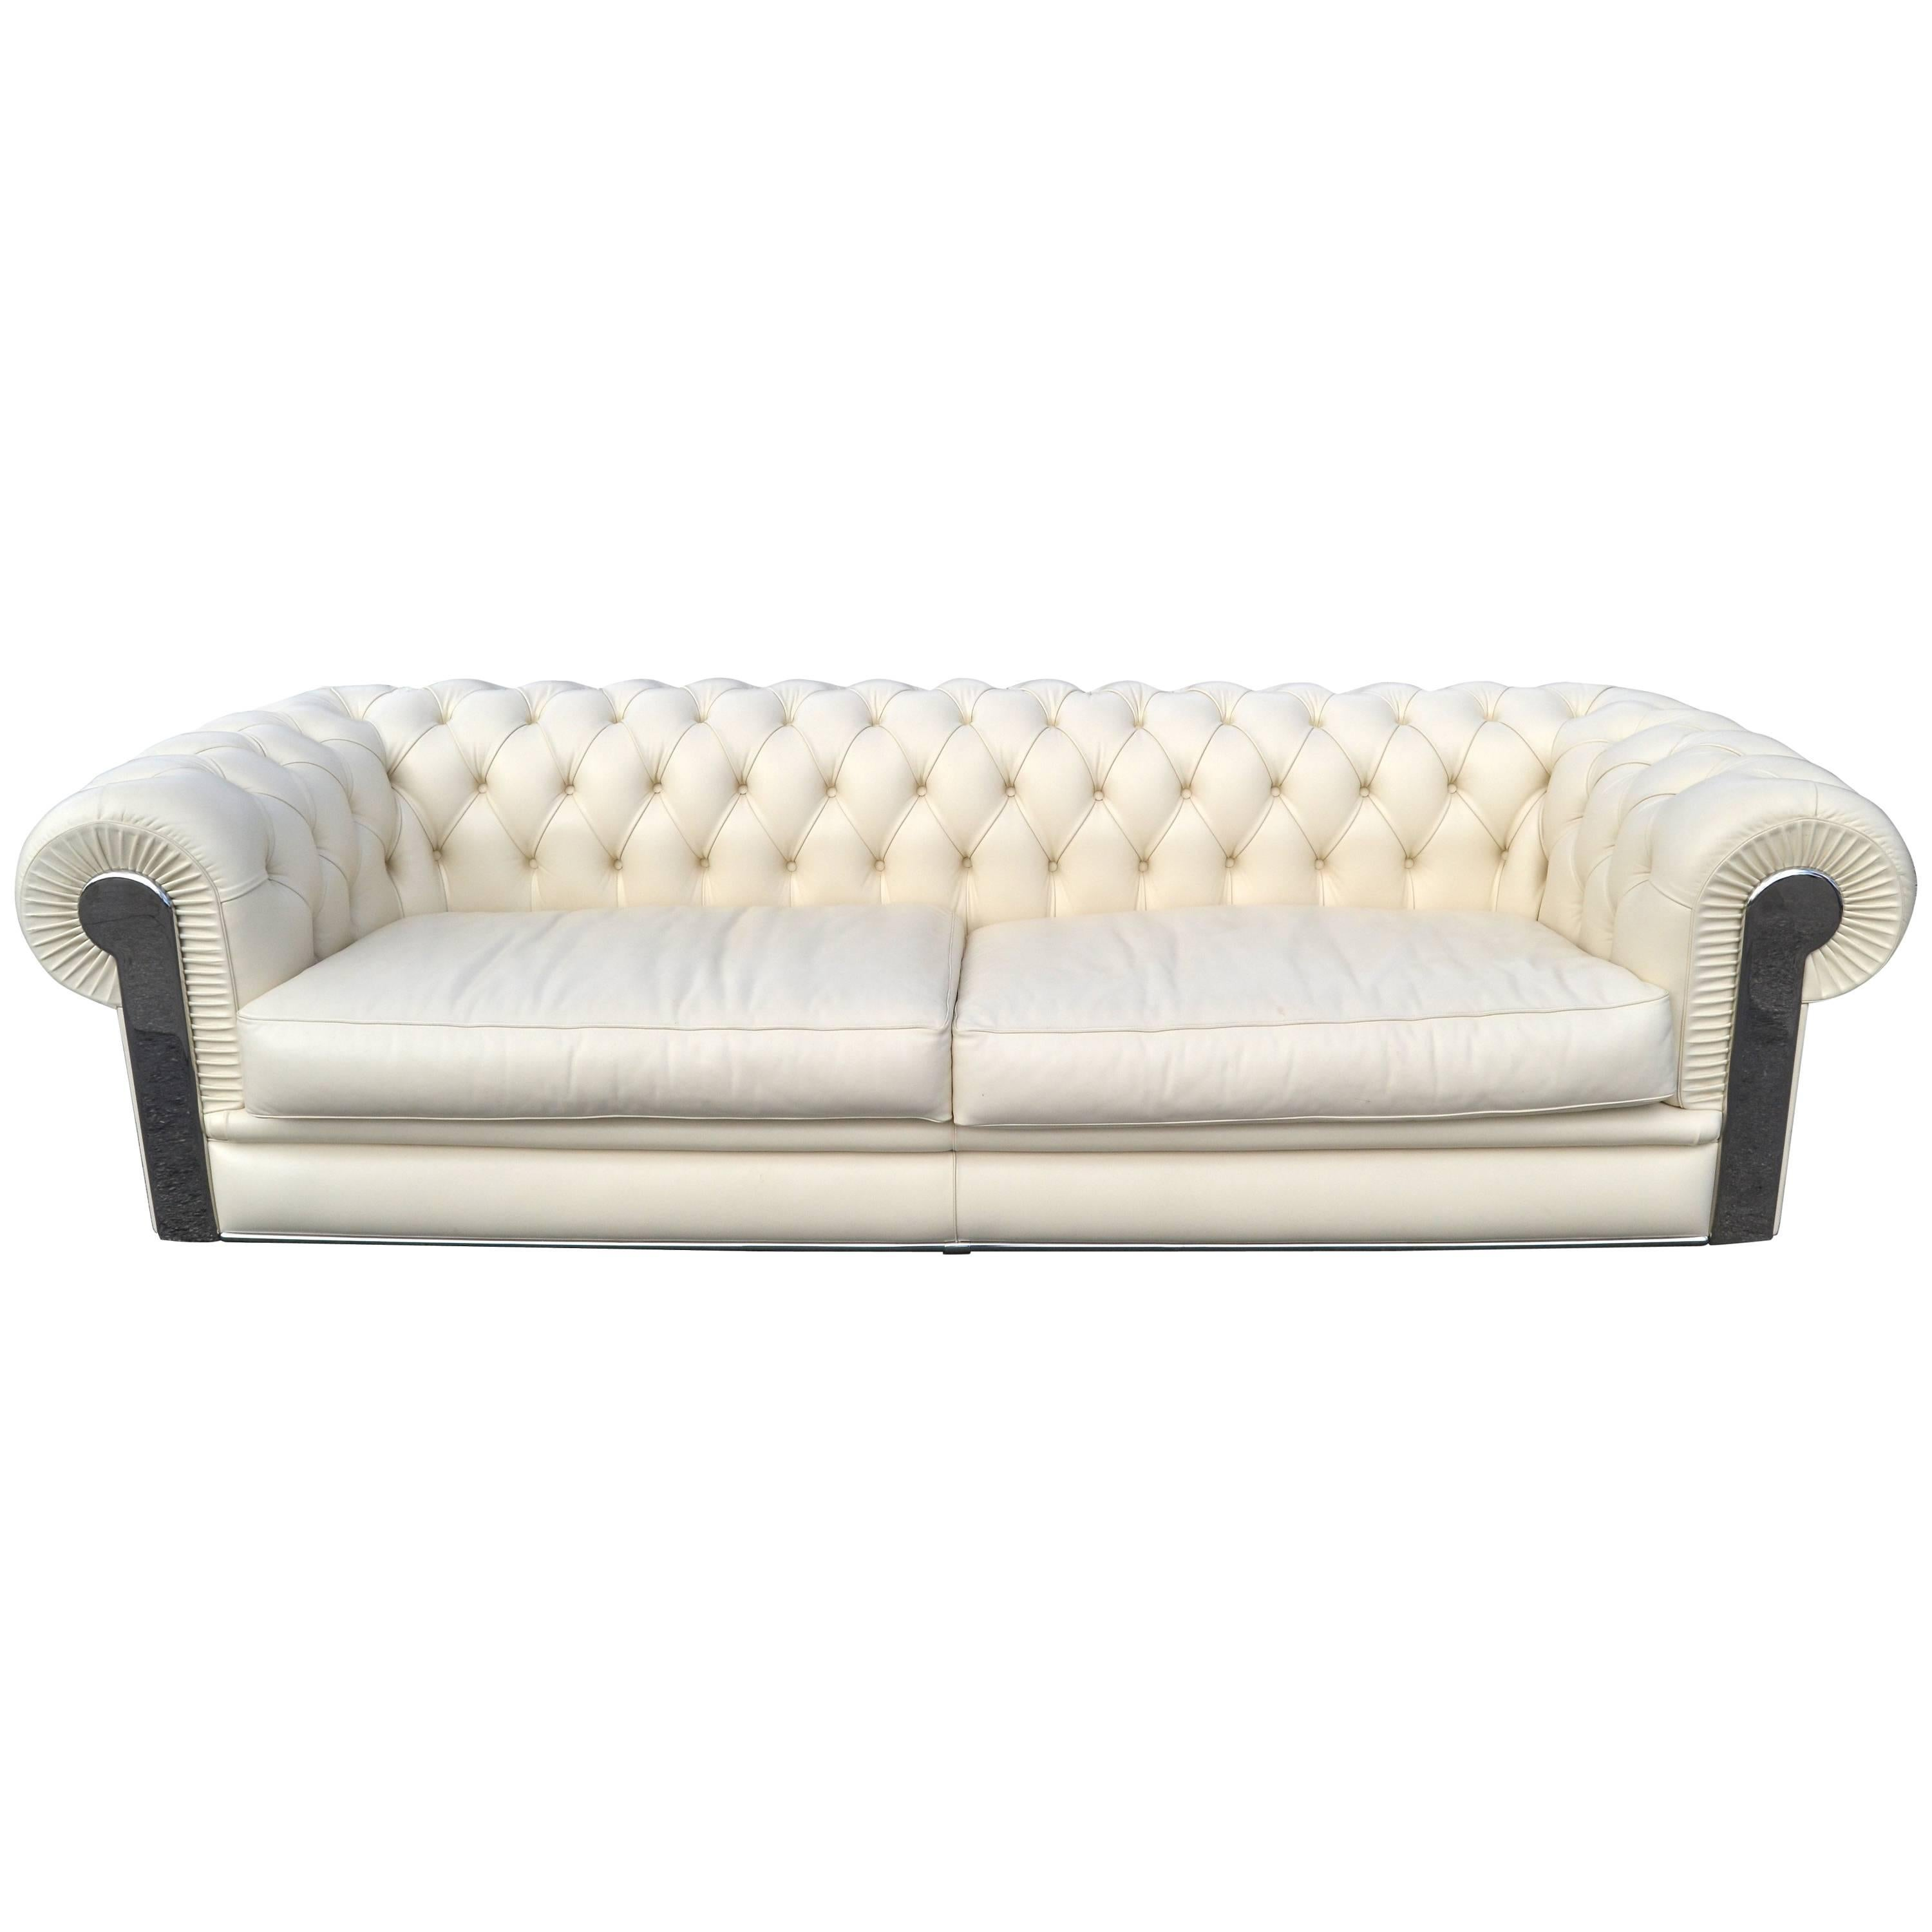 Superieur Fendi Casa Albino Tufted Leather Sofa In Chesterfield Style For Sale